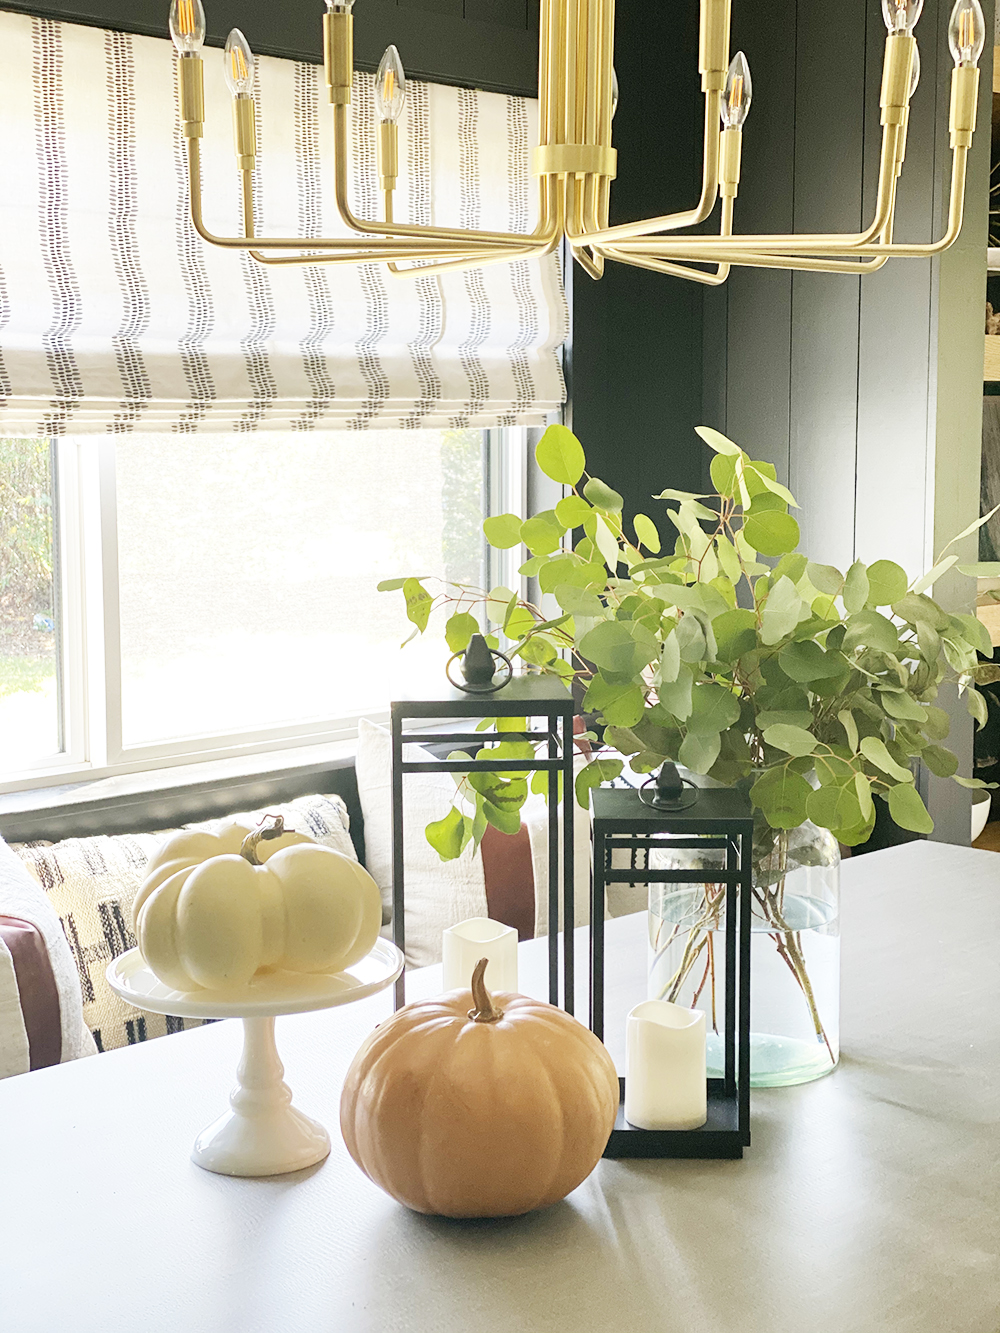 Affordable Fall Front Porch and Tabletop Decor Ideas5